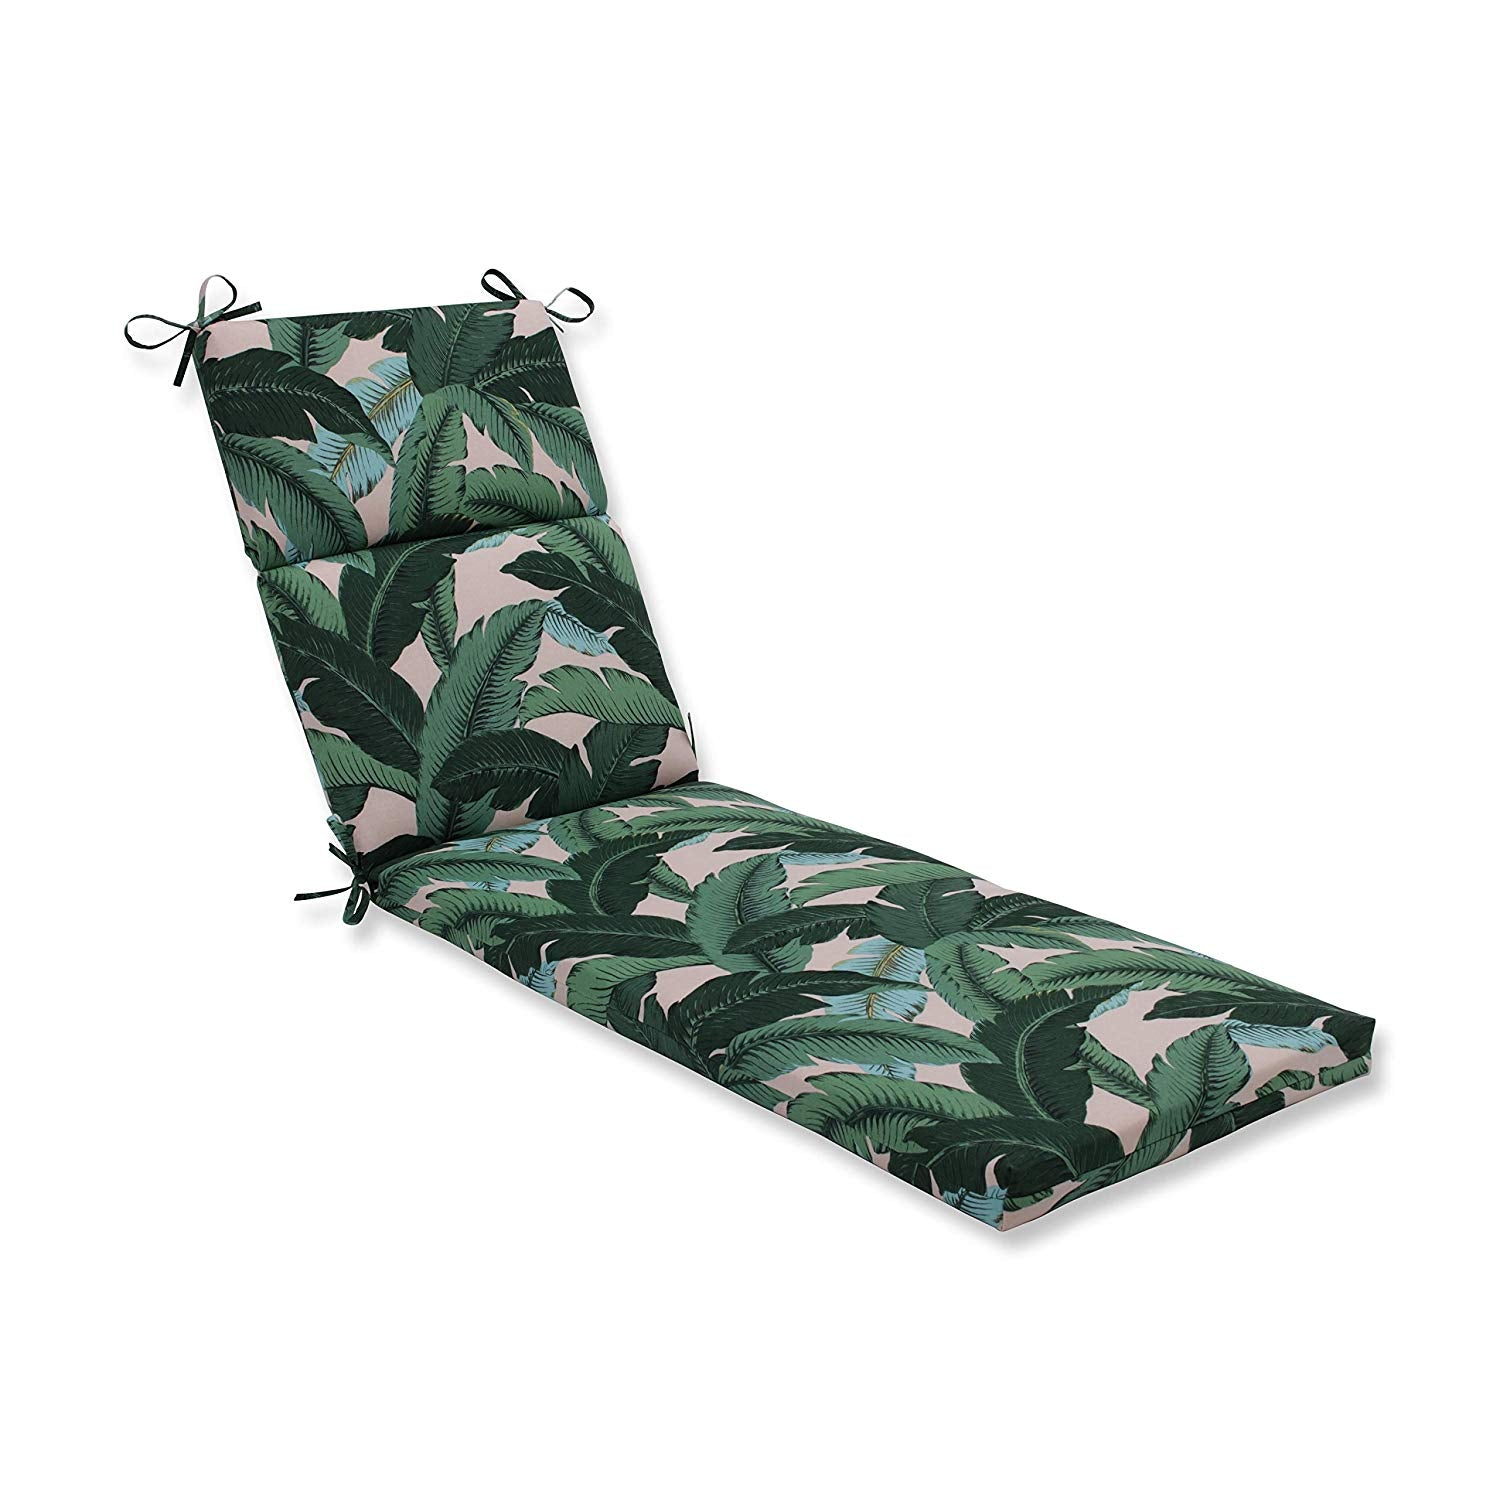 "72"" Lounge Cushion Green Tropical Botanical Outdoor 6ft Patio Chaise Pad Lounger Beach Nautical Coastal Long Oversized Rectangle Shaped All"